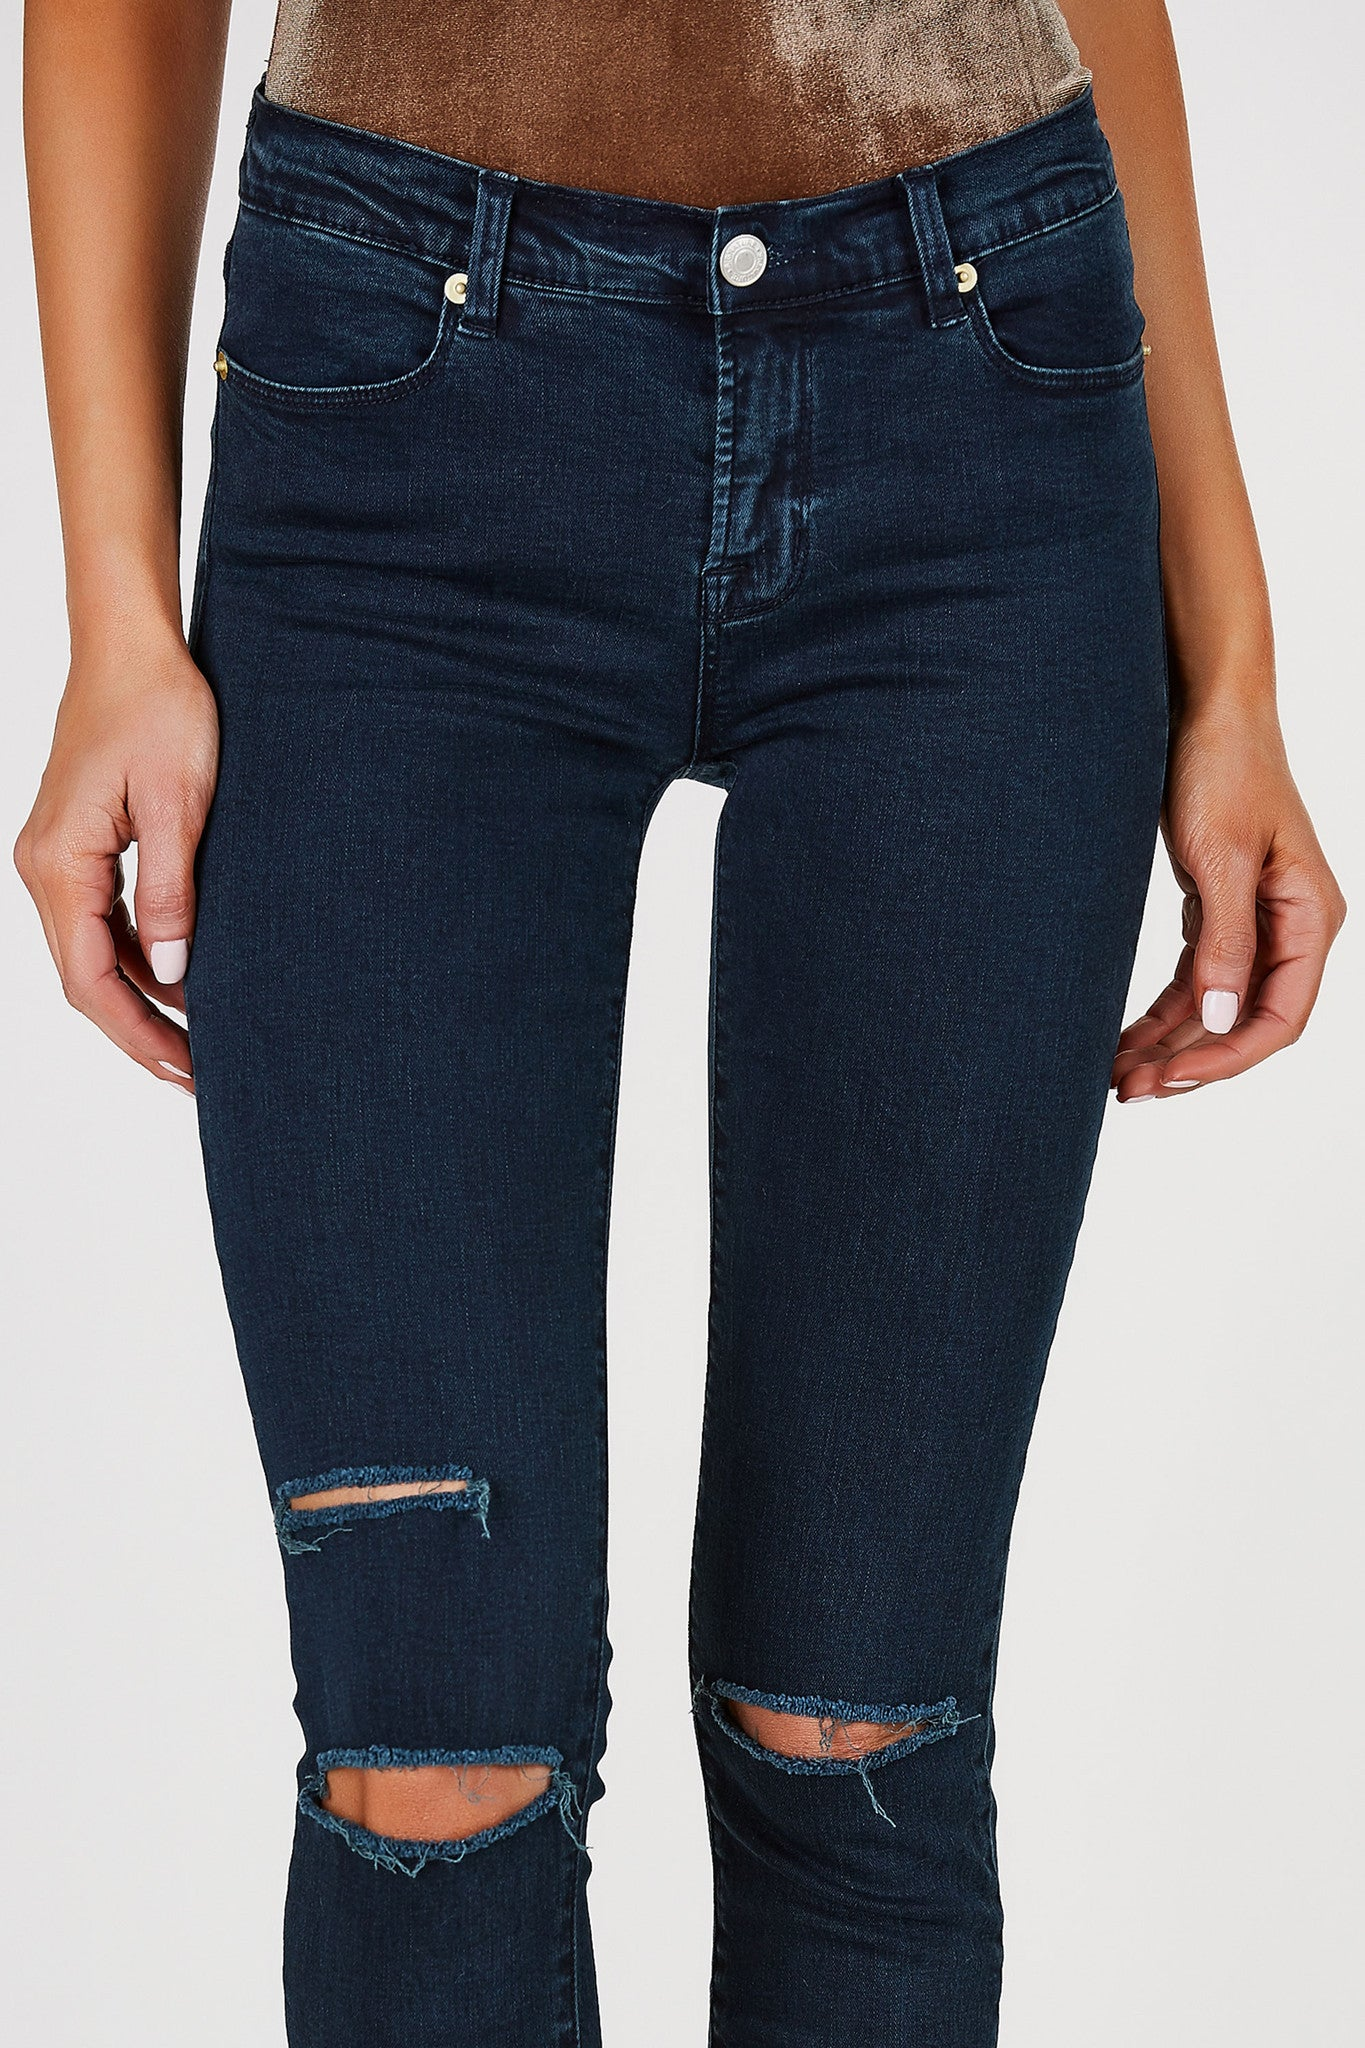 Mid rise skinny jeans in a deep wash. Distressing at knees with raw hem finish.